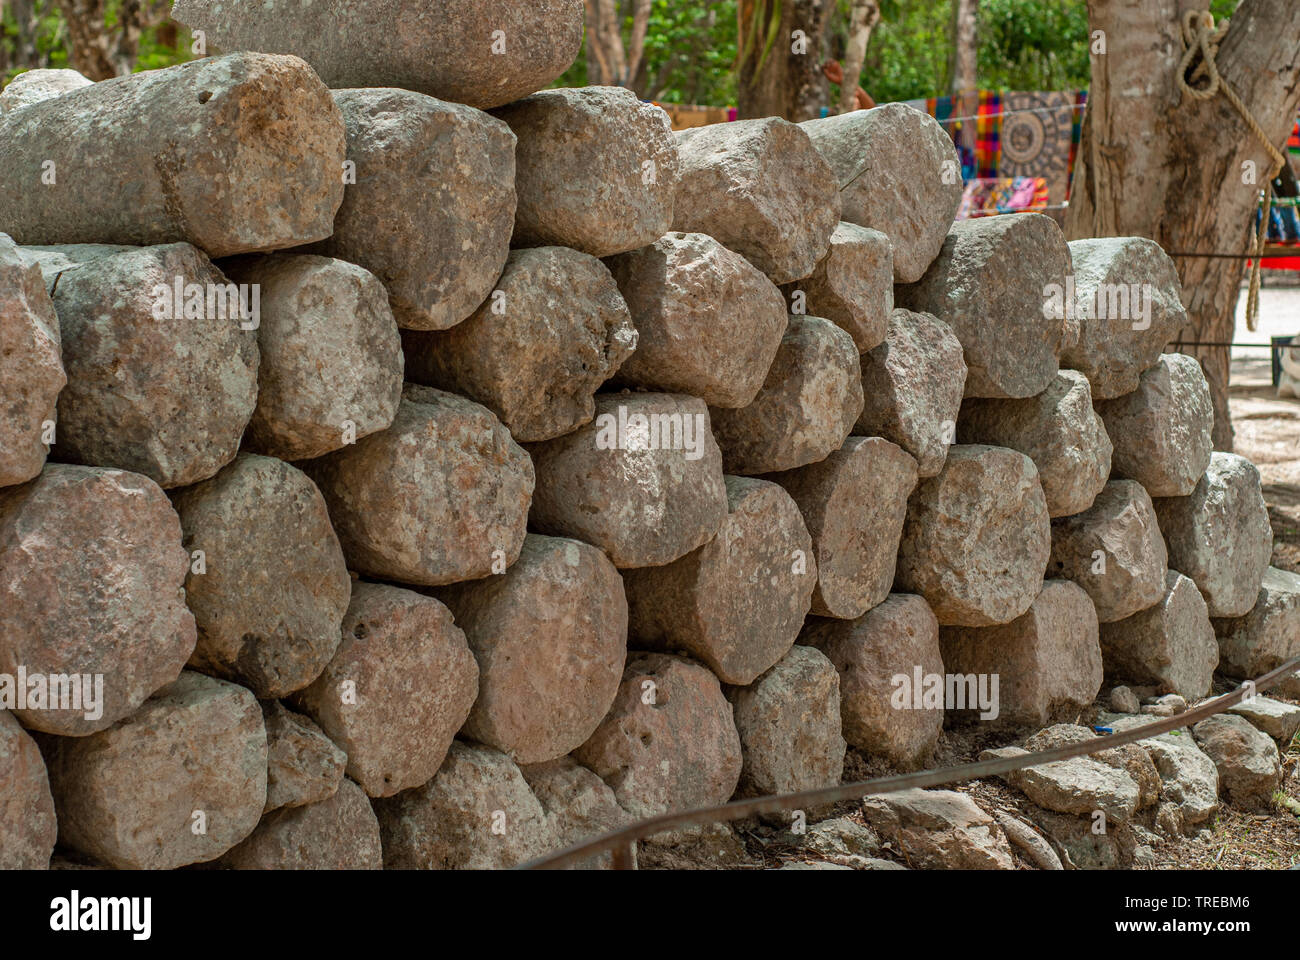 Ruins of columns found in the archaeological area of Chichen Itza, on the Yucatan peninsula - Stock Image